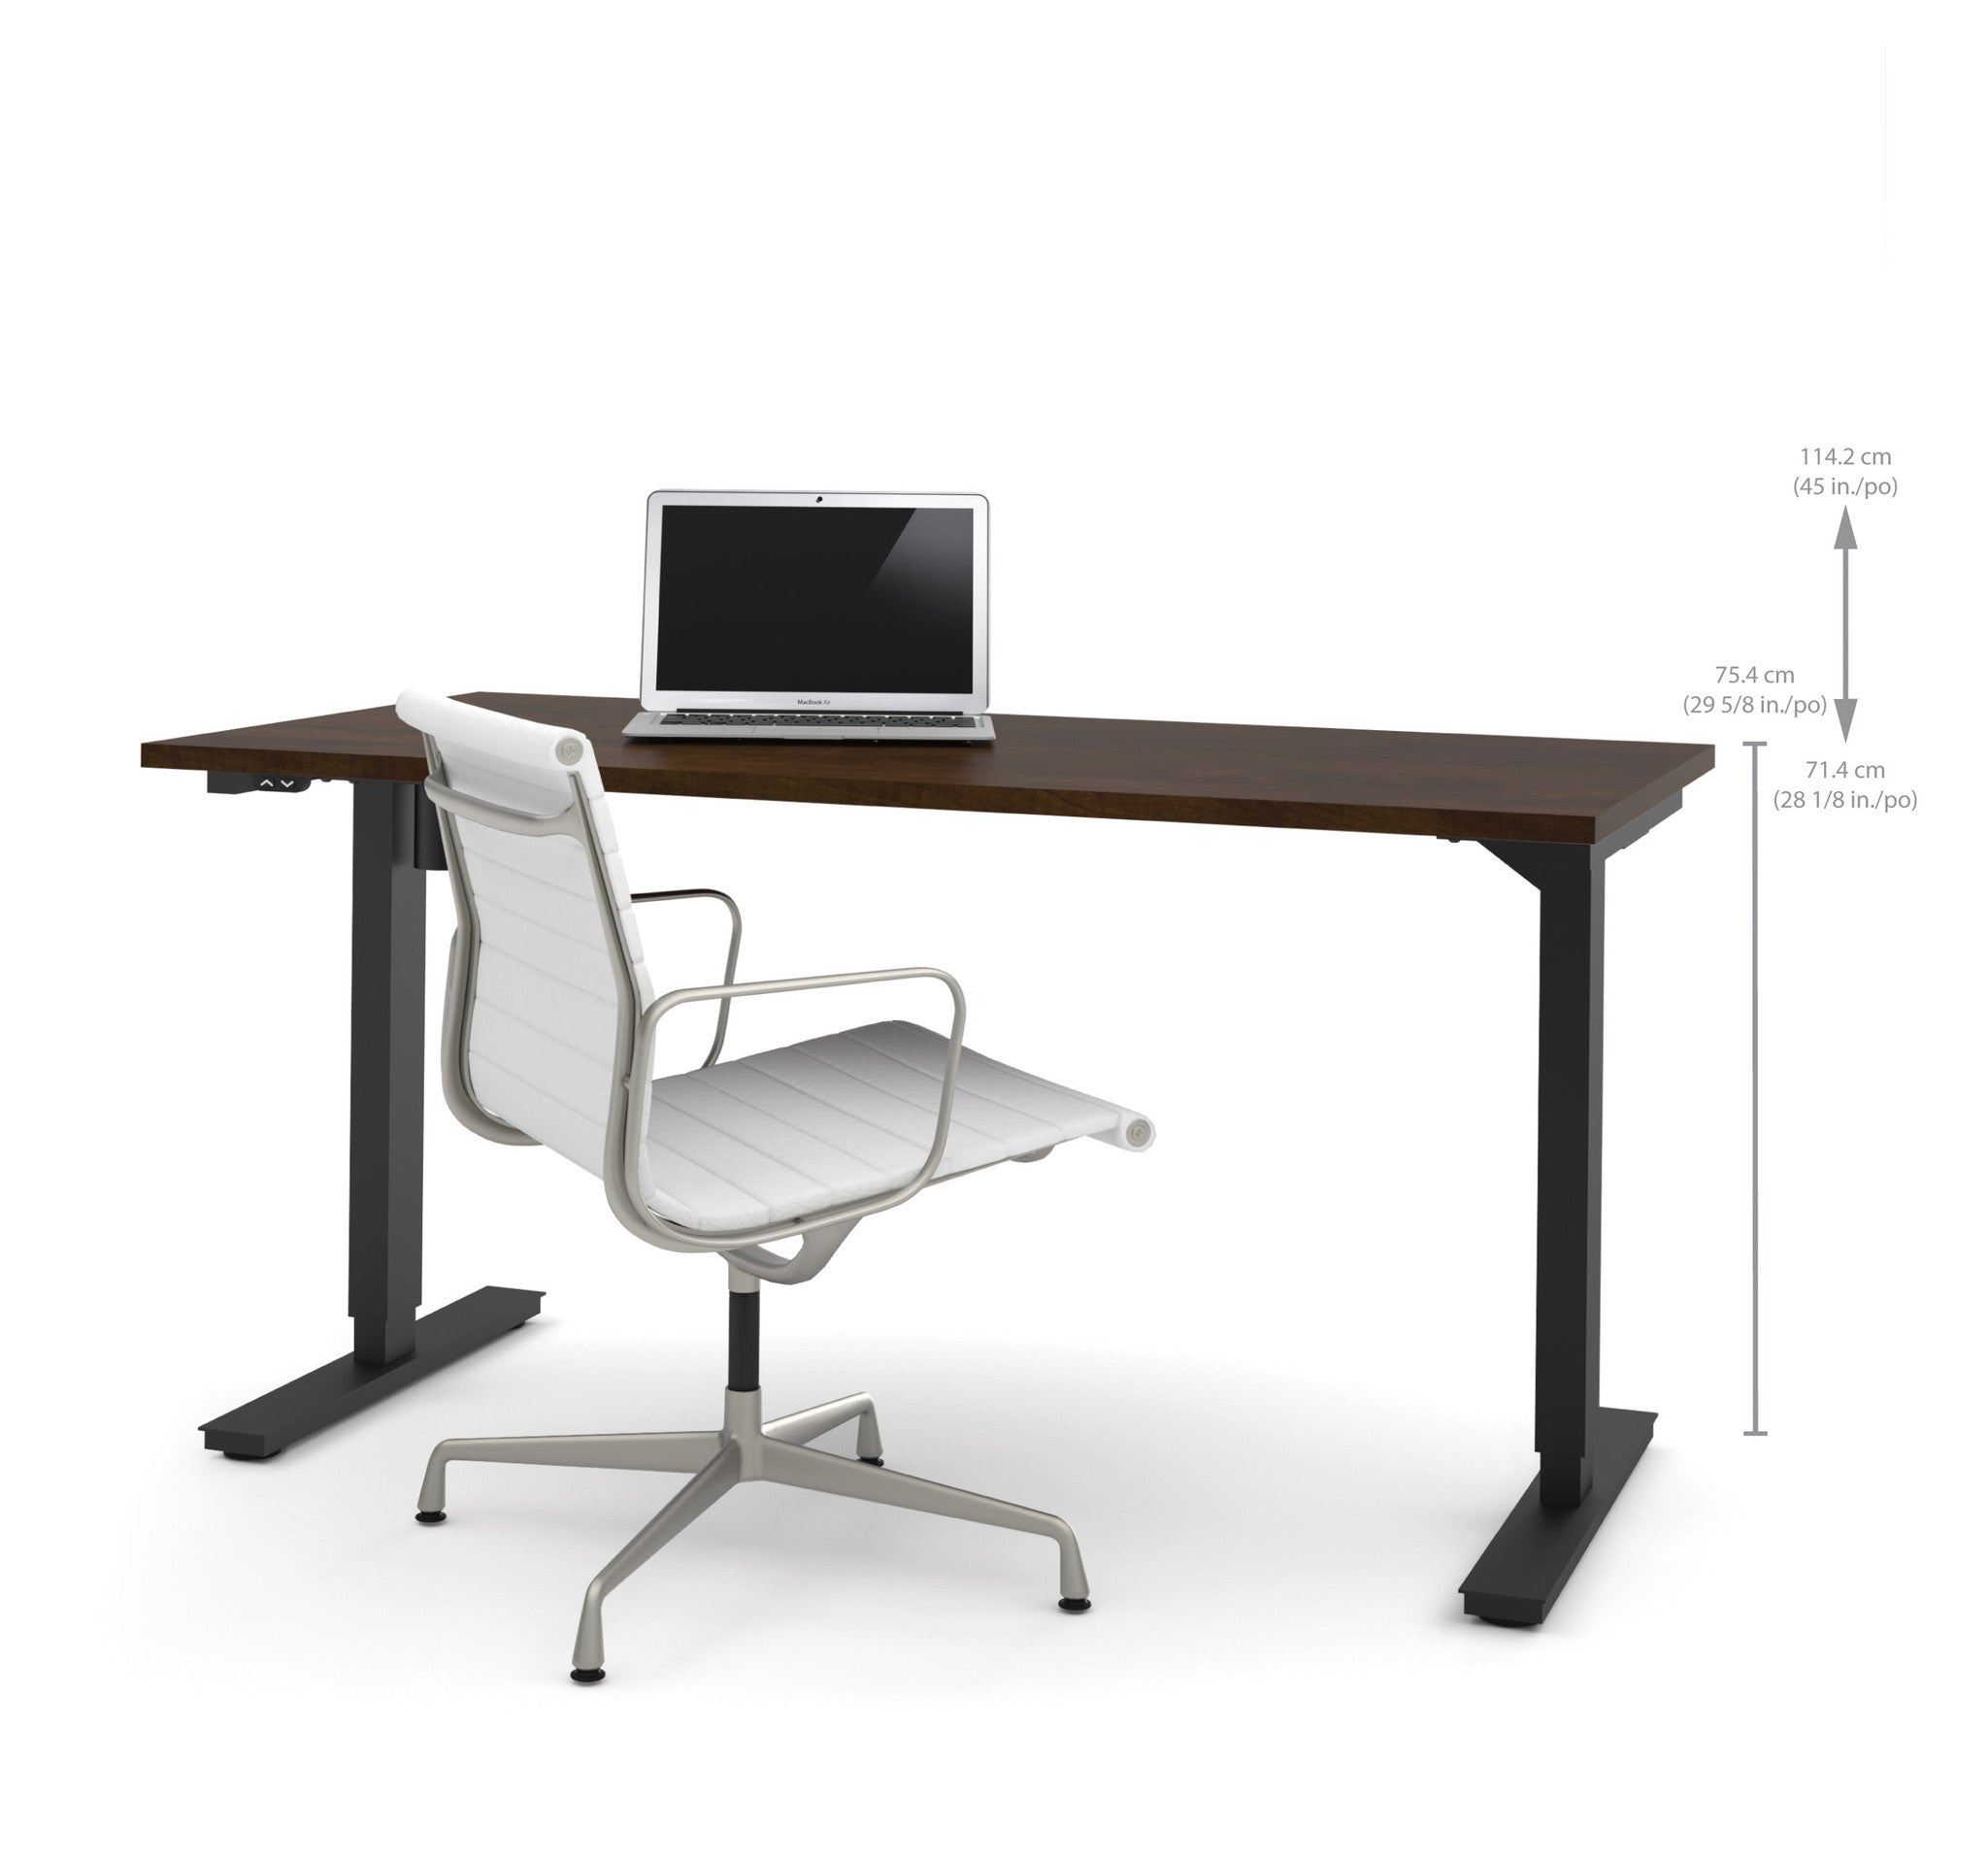 60 Quot Sit Stand Electric Height Adjustable Office Desk In